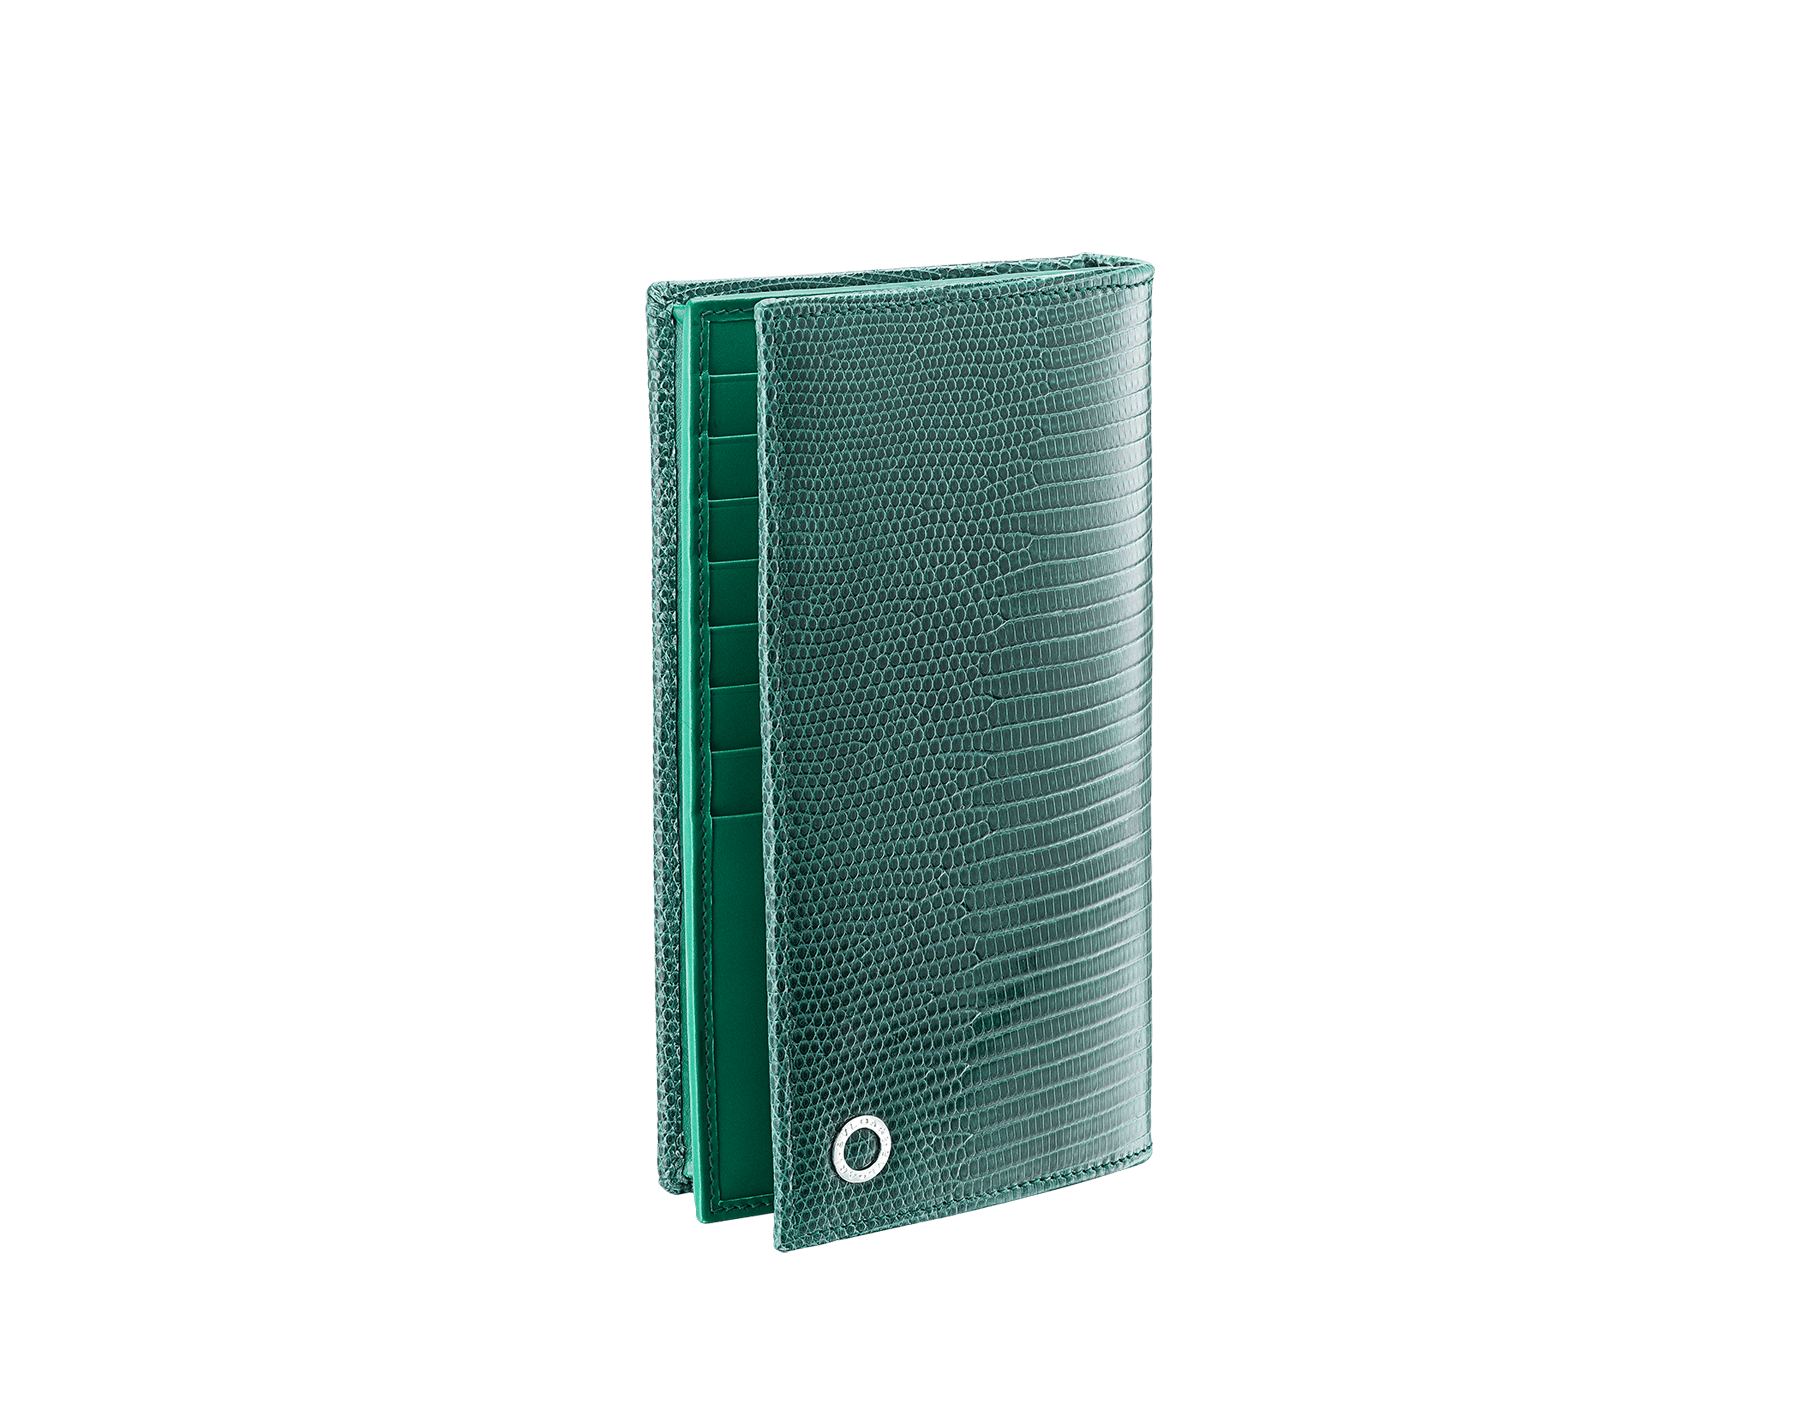 BVLGARI BVLGARI wallet for men in forest emerald shiny lizard skin and black nappa lining. Iconic logo décor in palladium plated brass. 289422 image 1